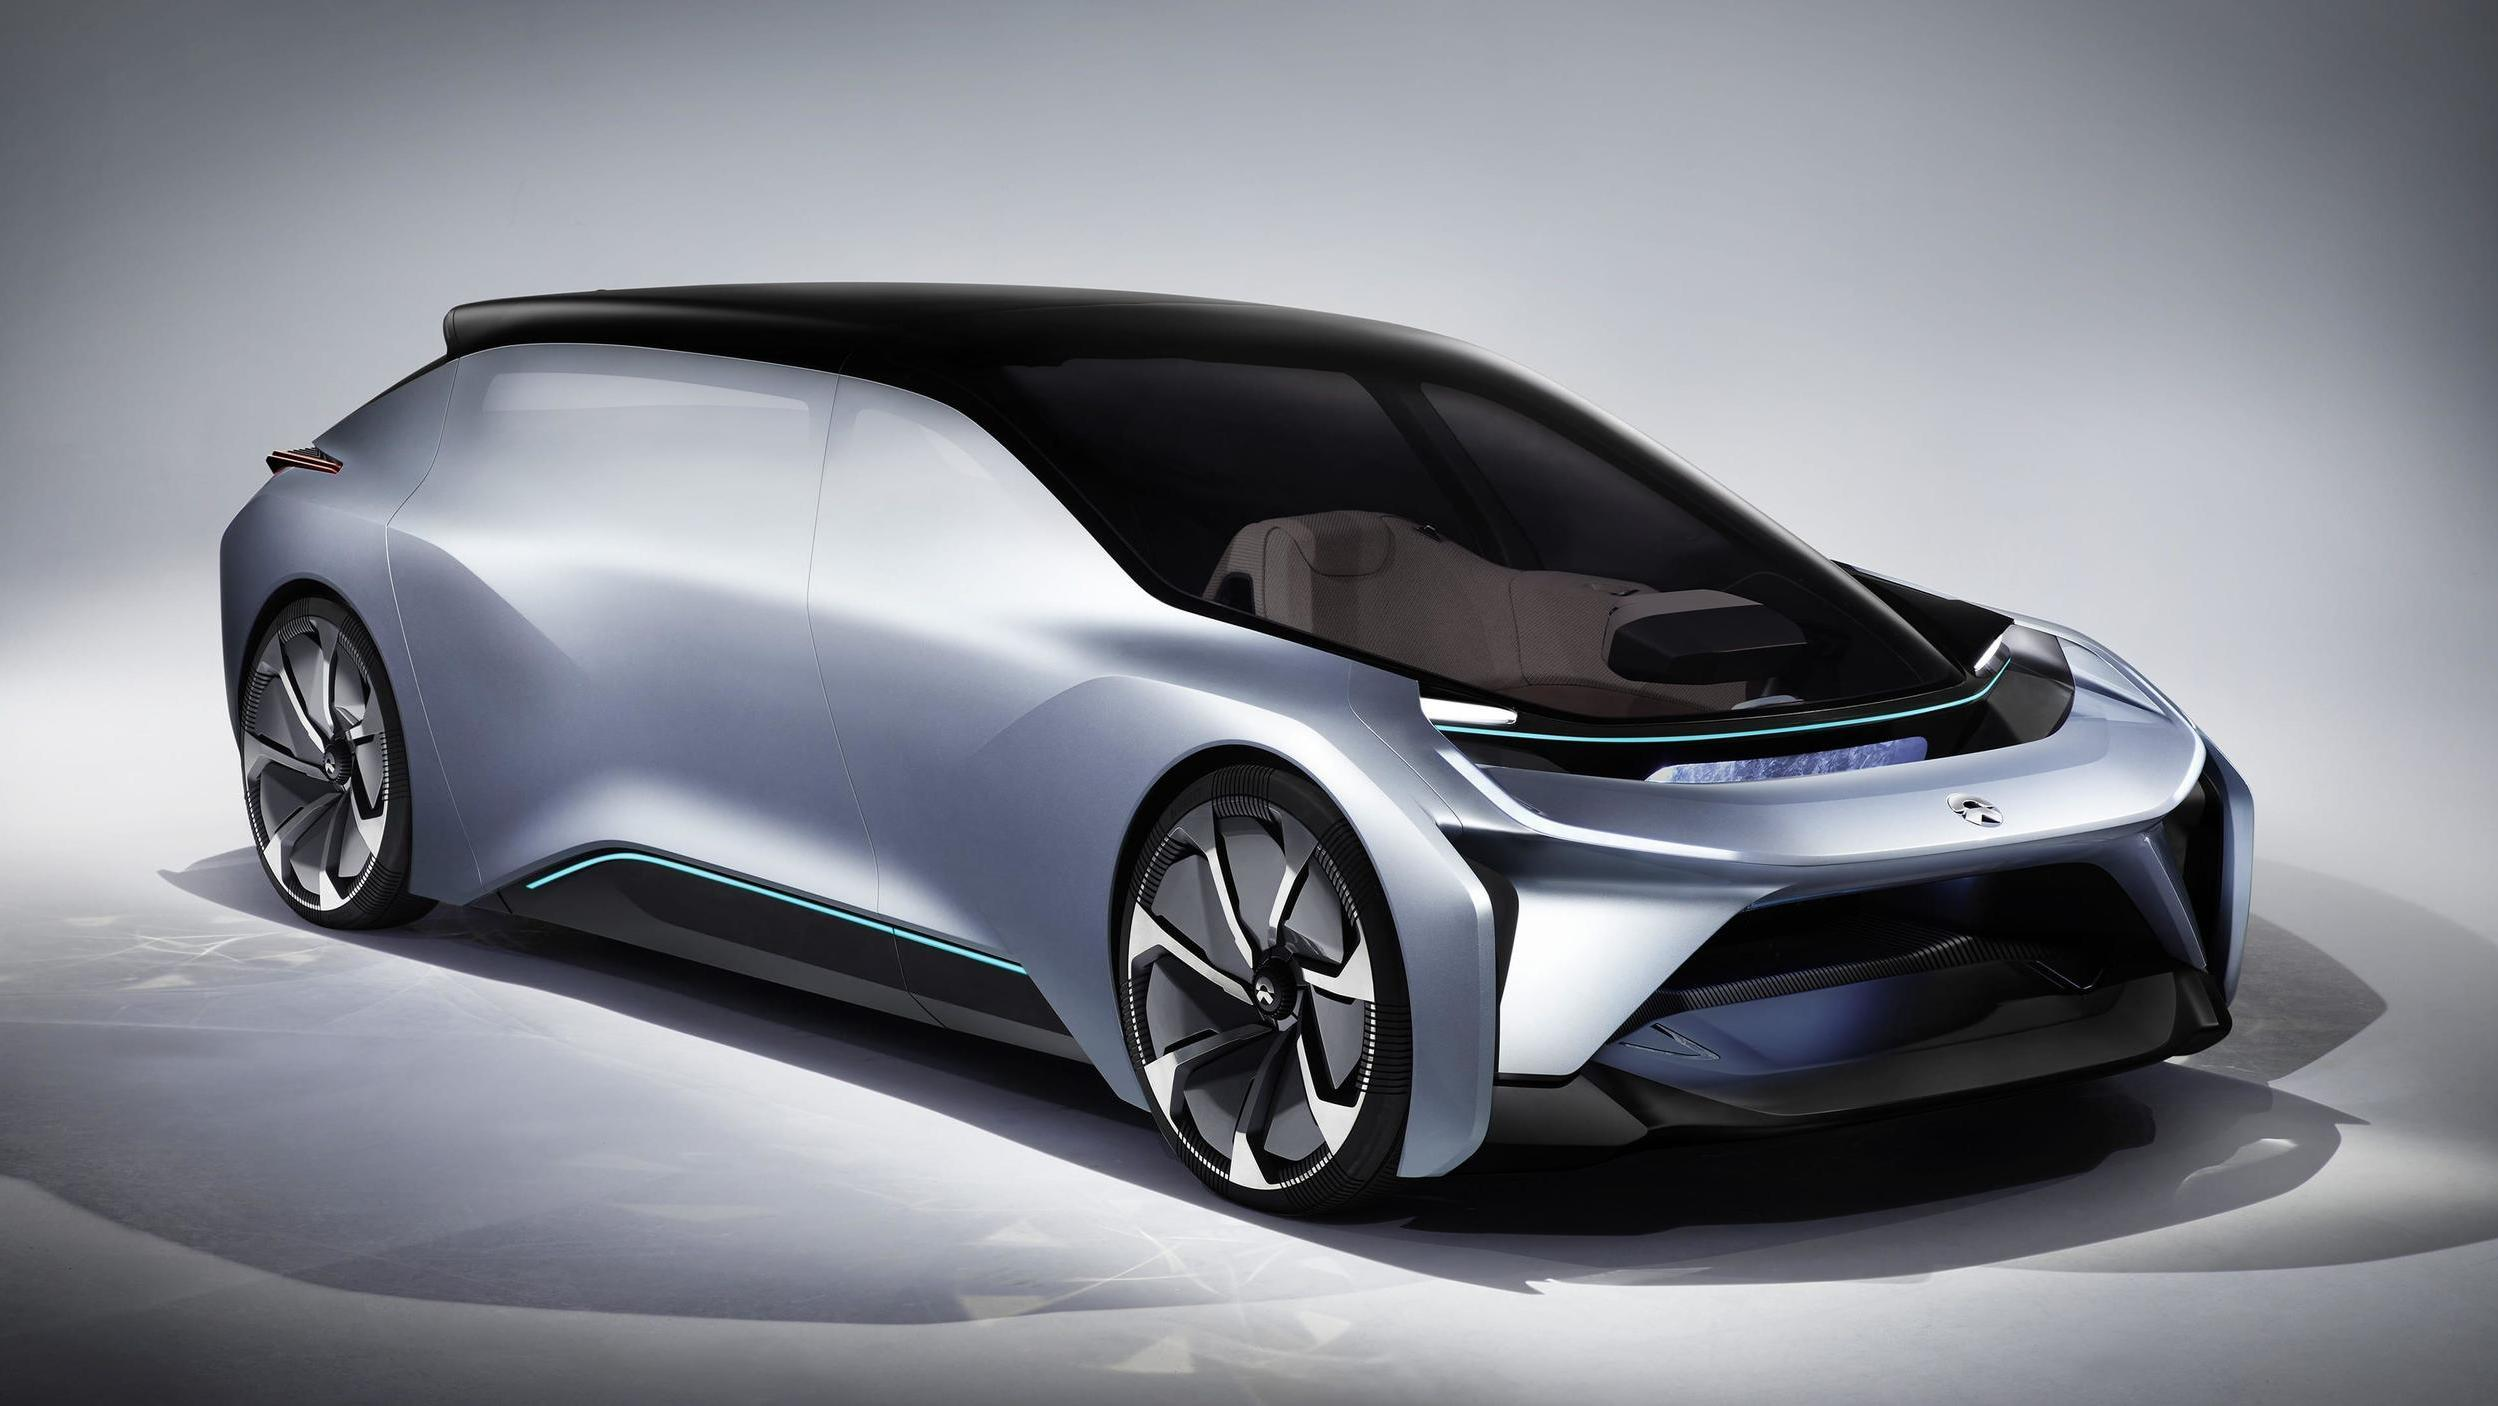 Chinese Automaker Unveils New Ev But Faraday Future Has Some Issues